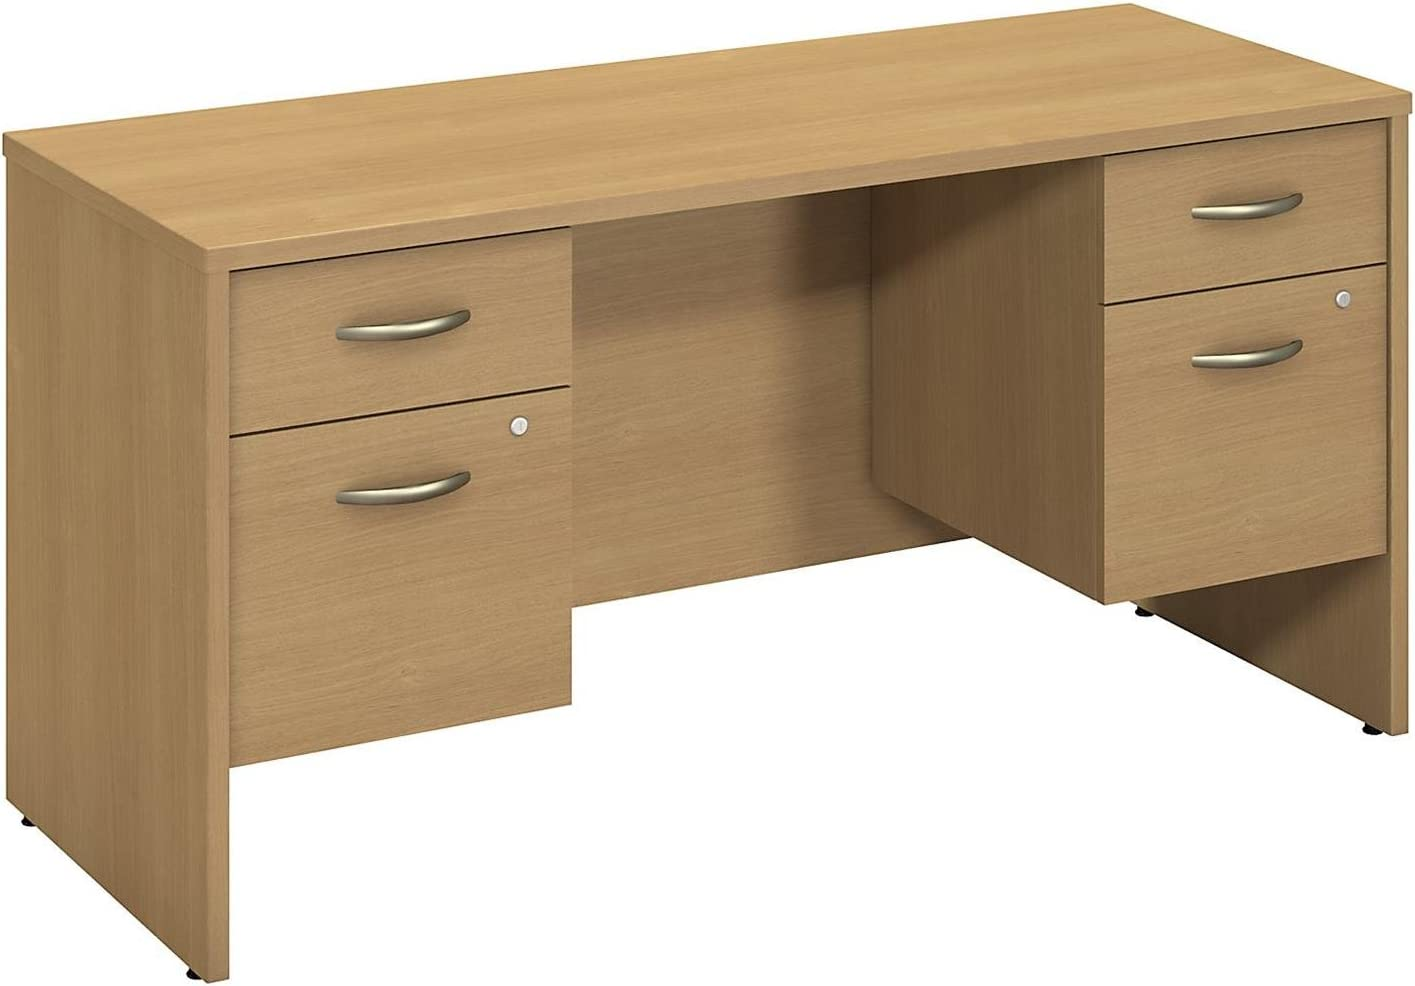 Bush Business Furniture Series C 60W X 24D Credenza Shell with Two 3/4 Pedestals in Light Oak